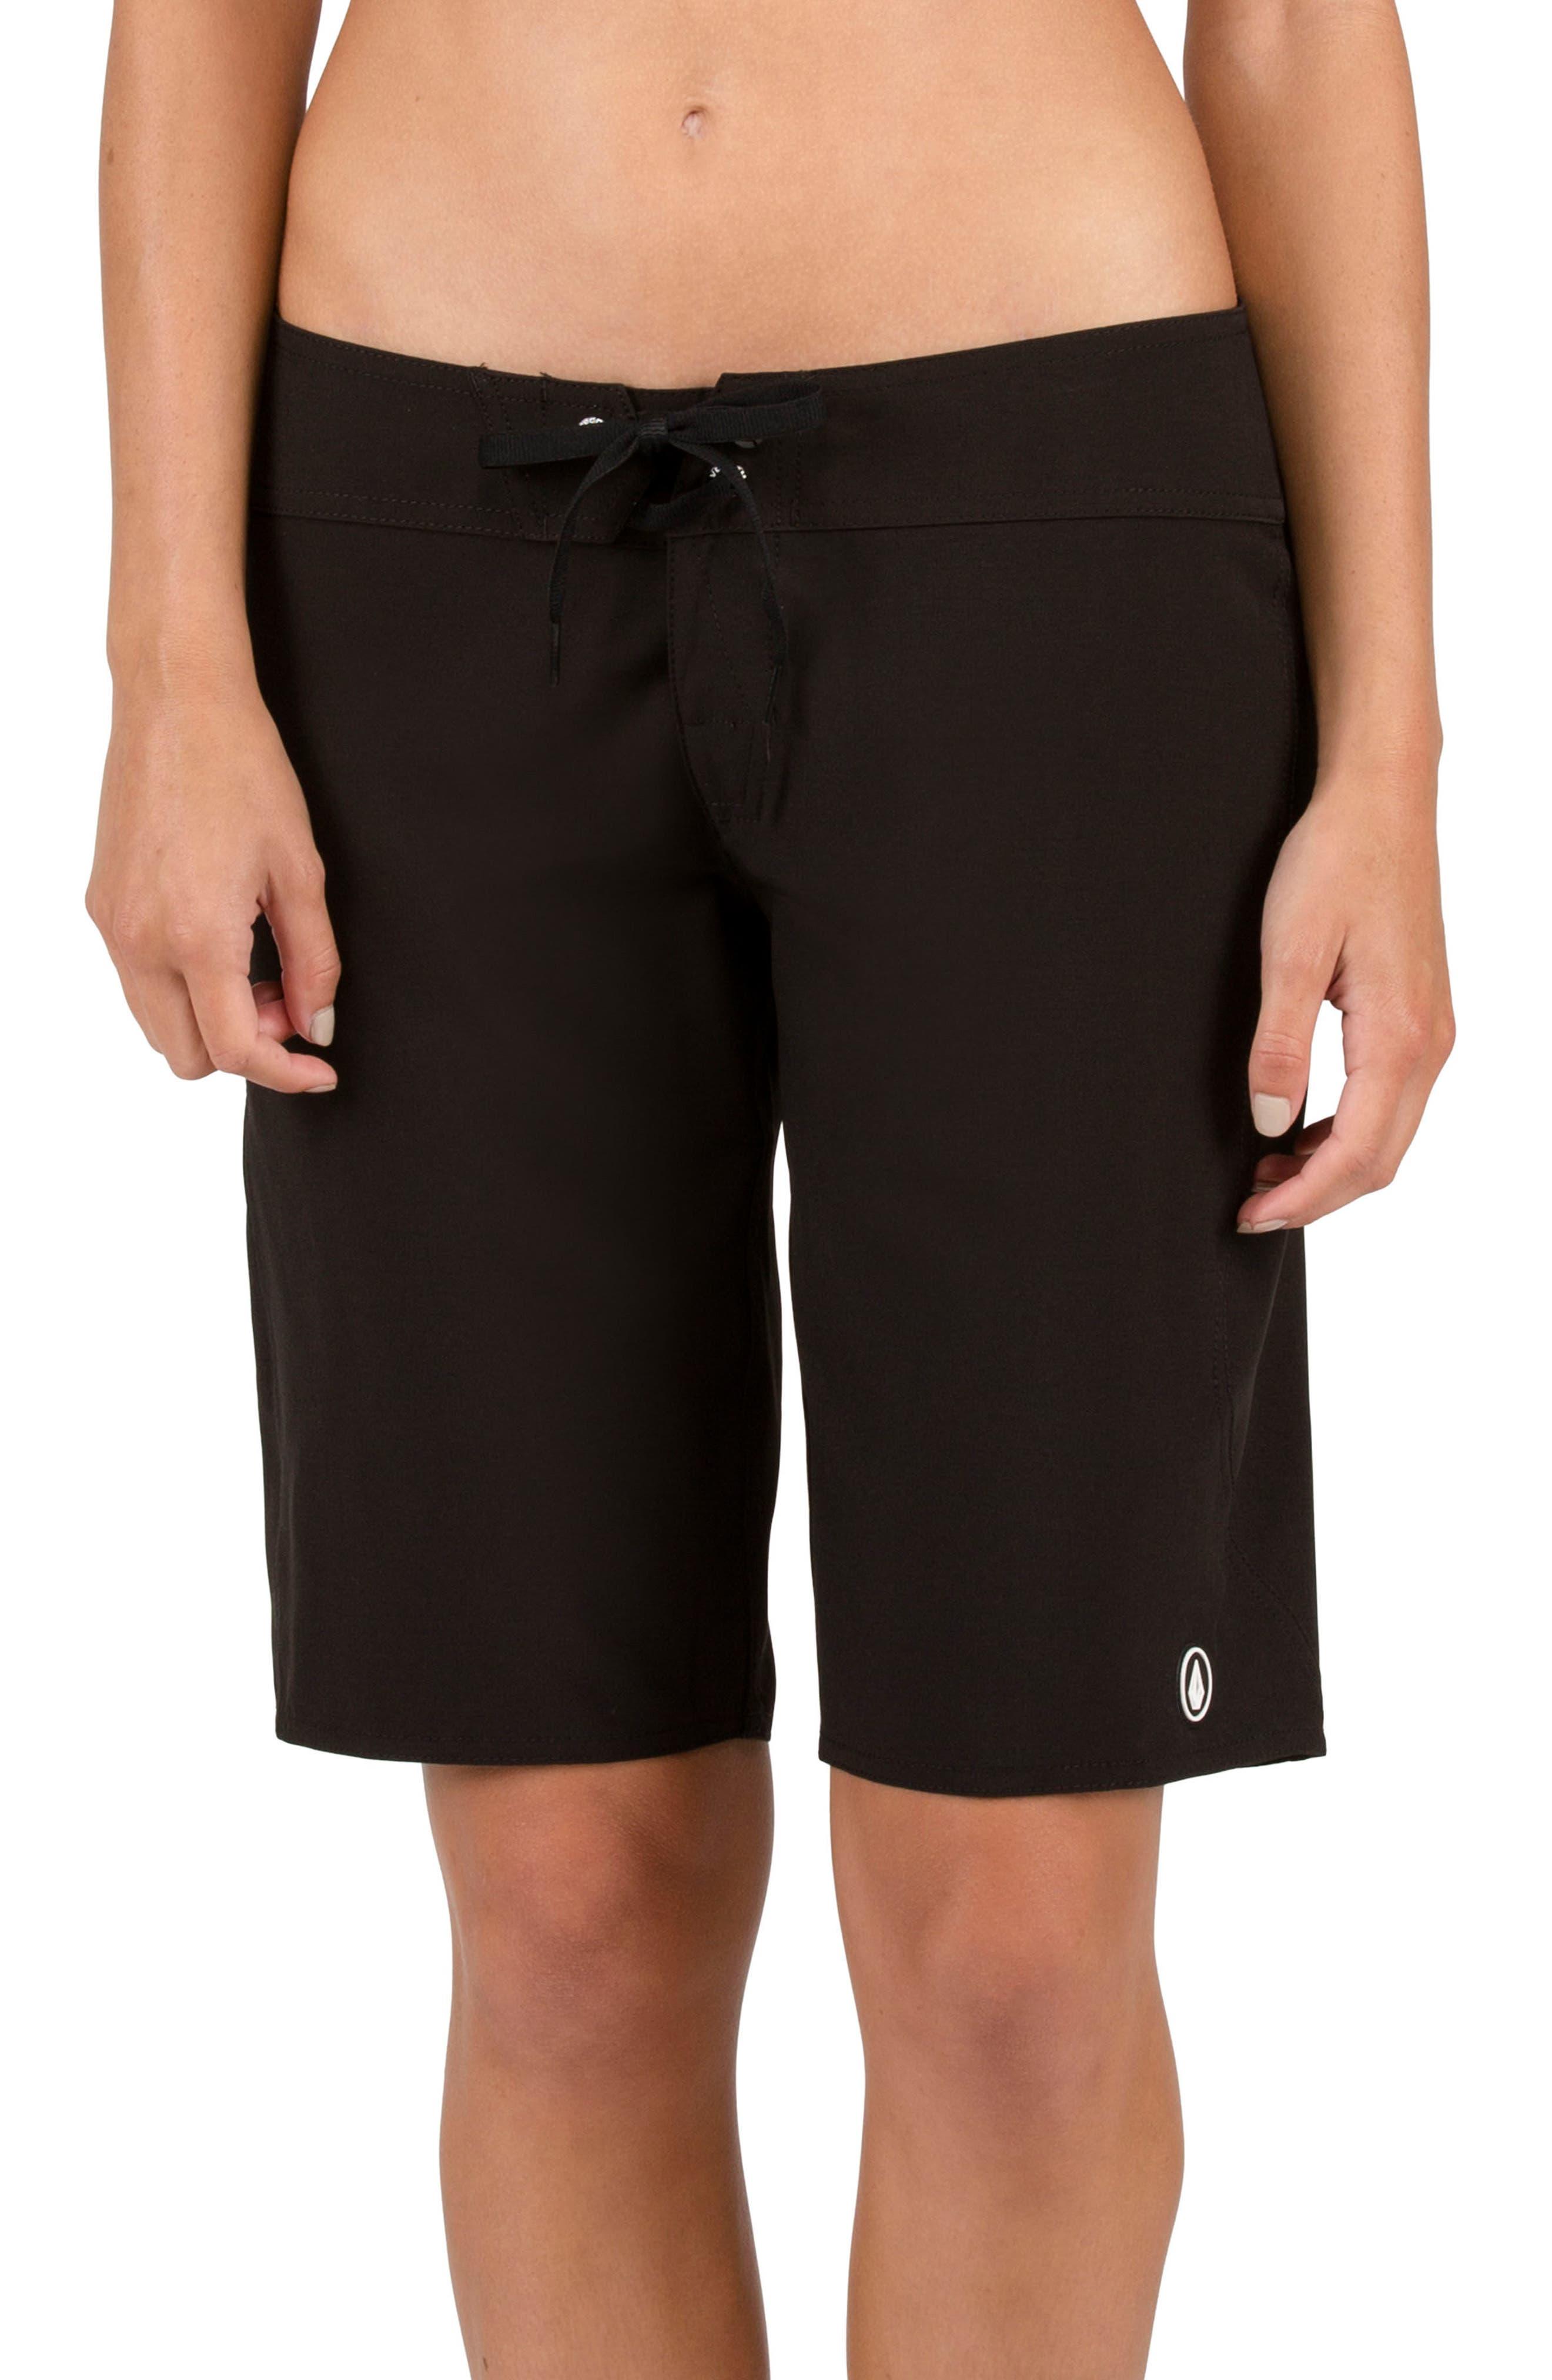 Simply Solid 11-Inch Board Shorts,                         Main,                         color, 001